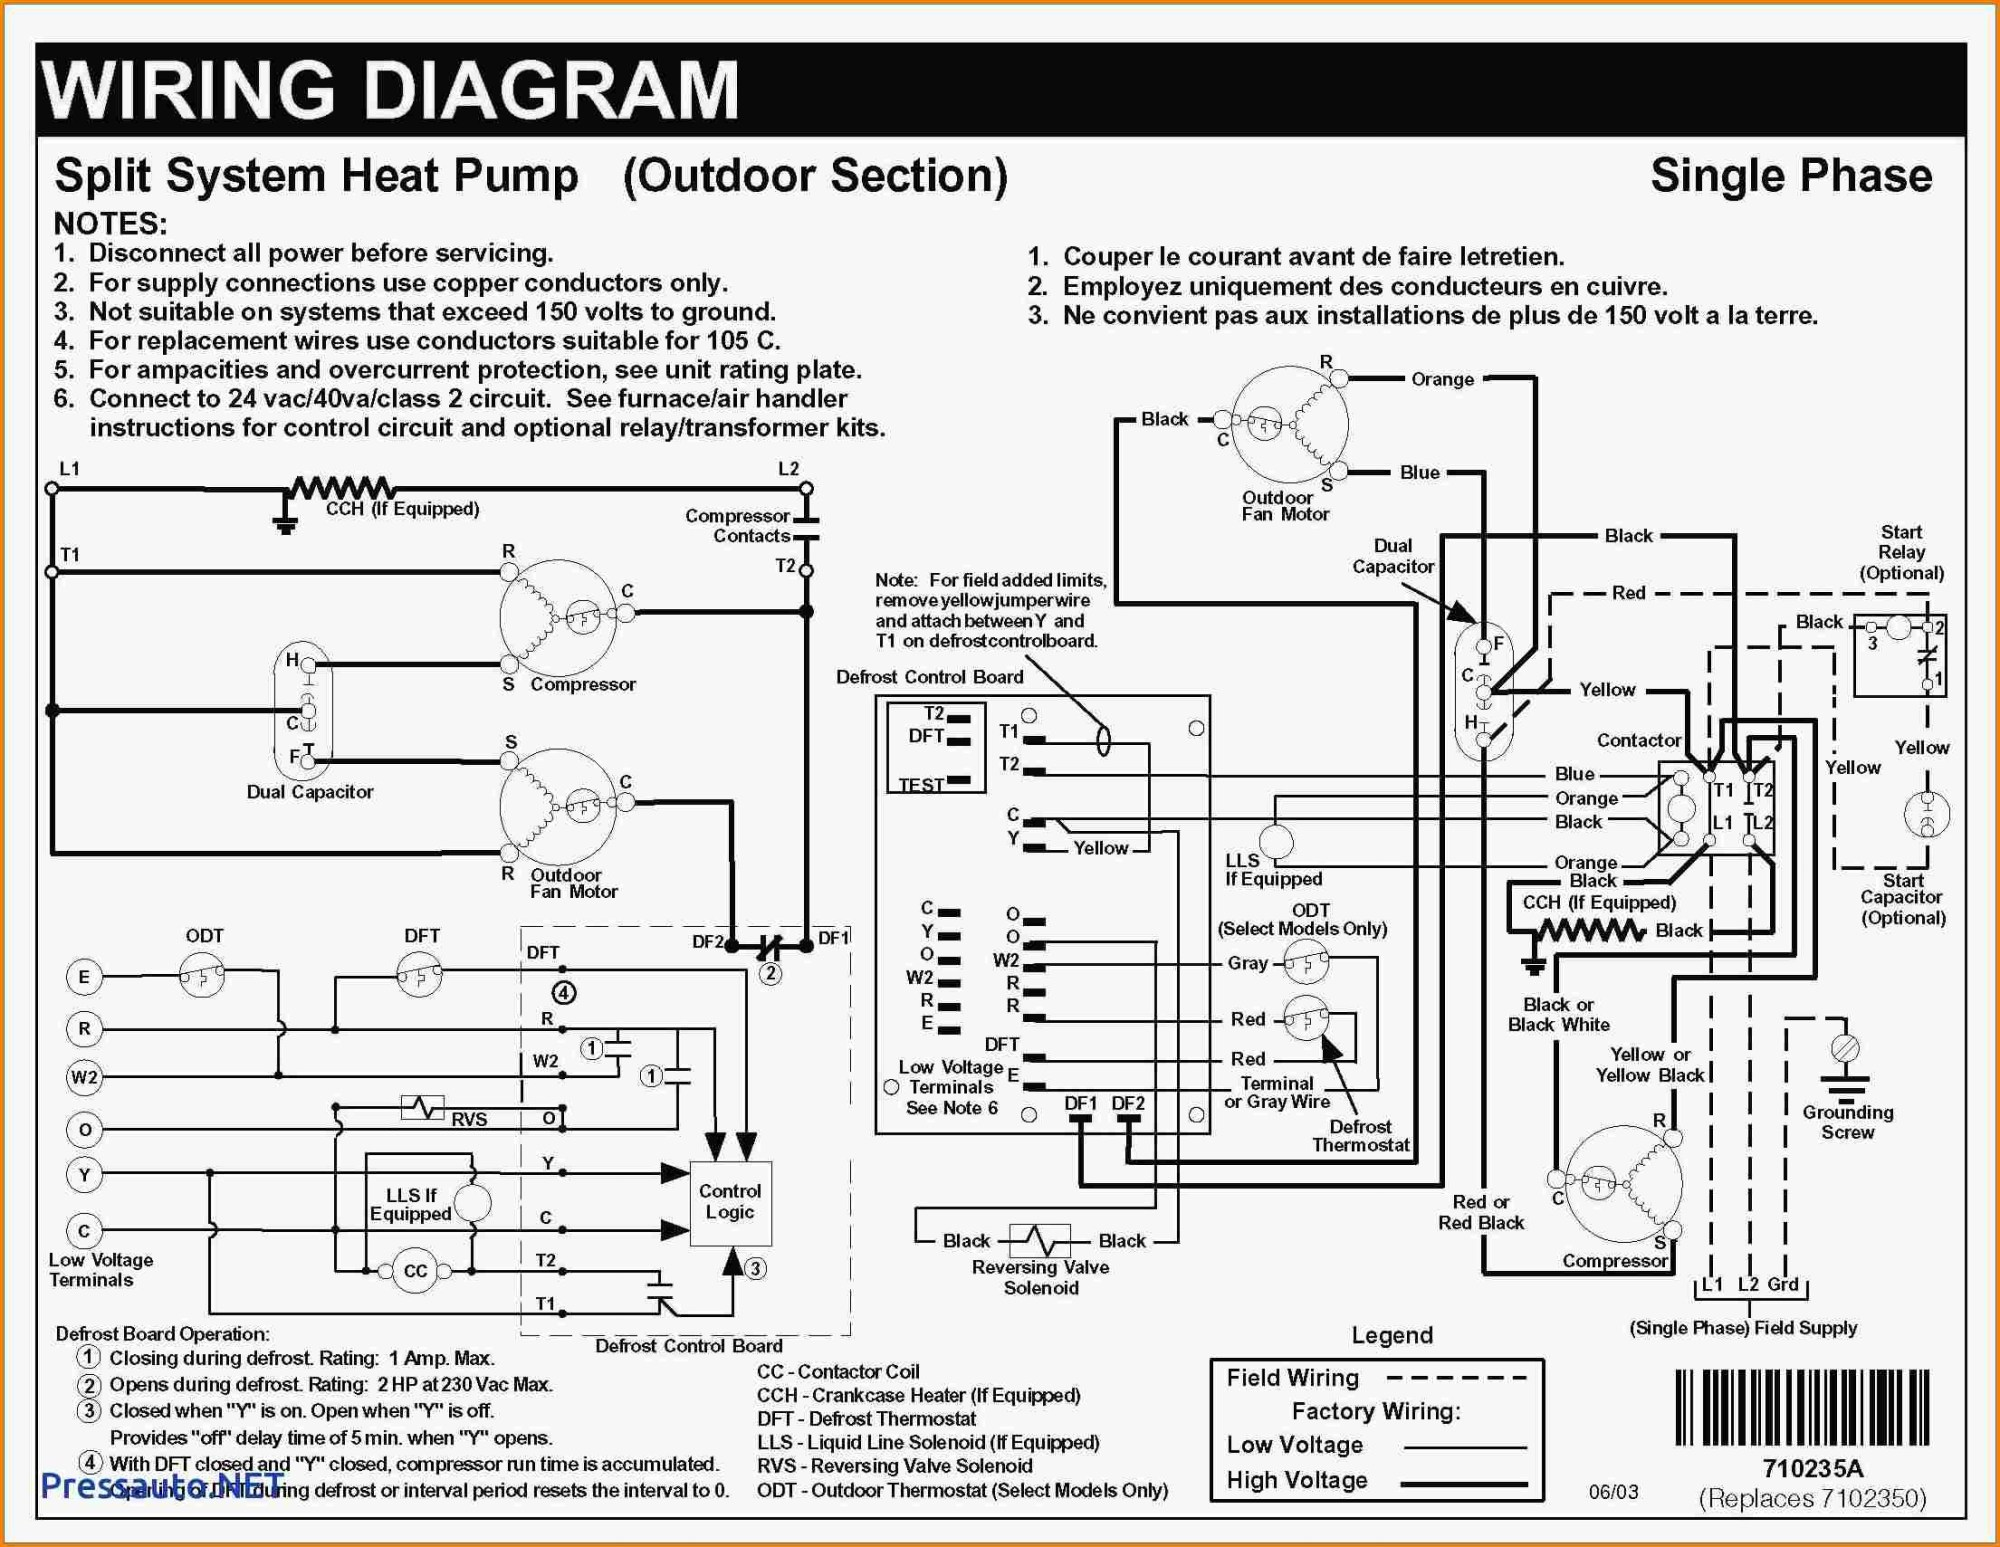 hight resolution of nordyne wiring diagram electric furnace collection basic electric furnace wiring diagram free download goodman heat